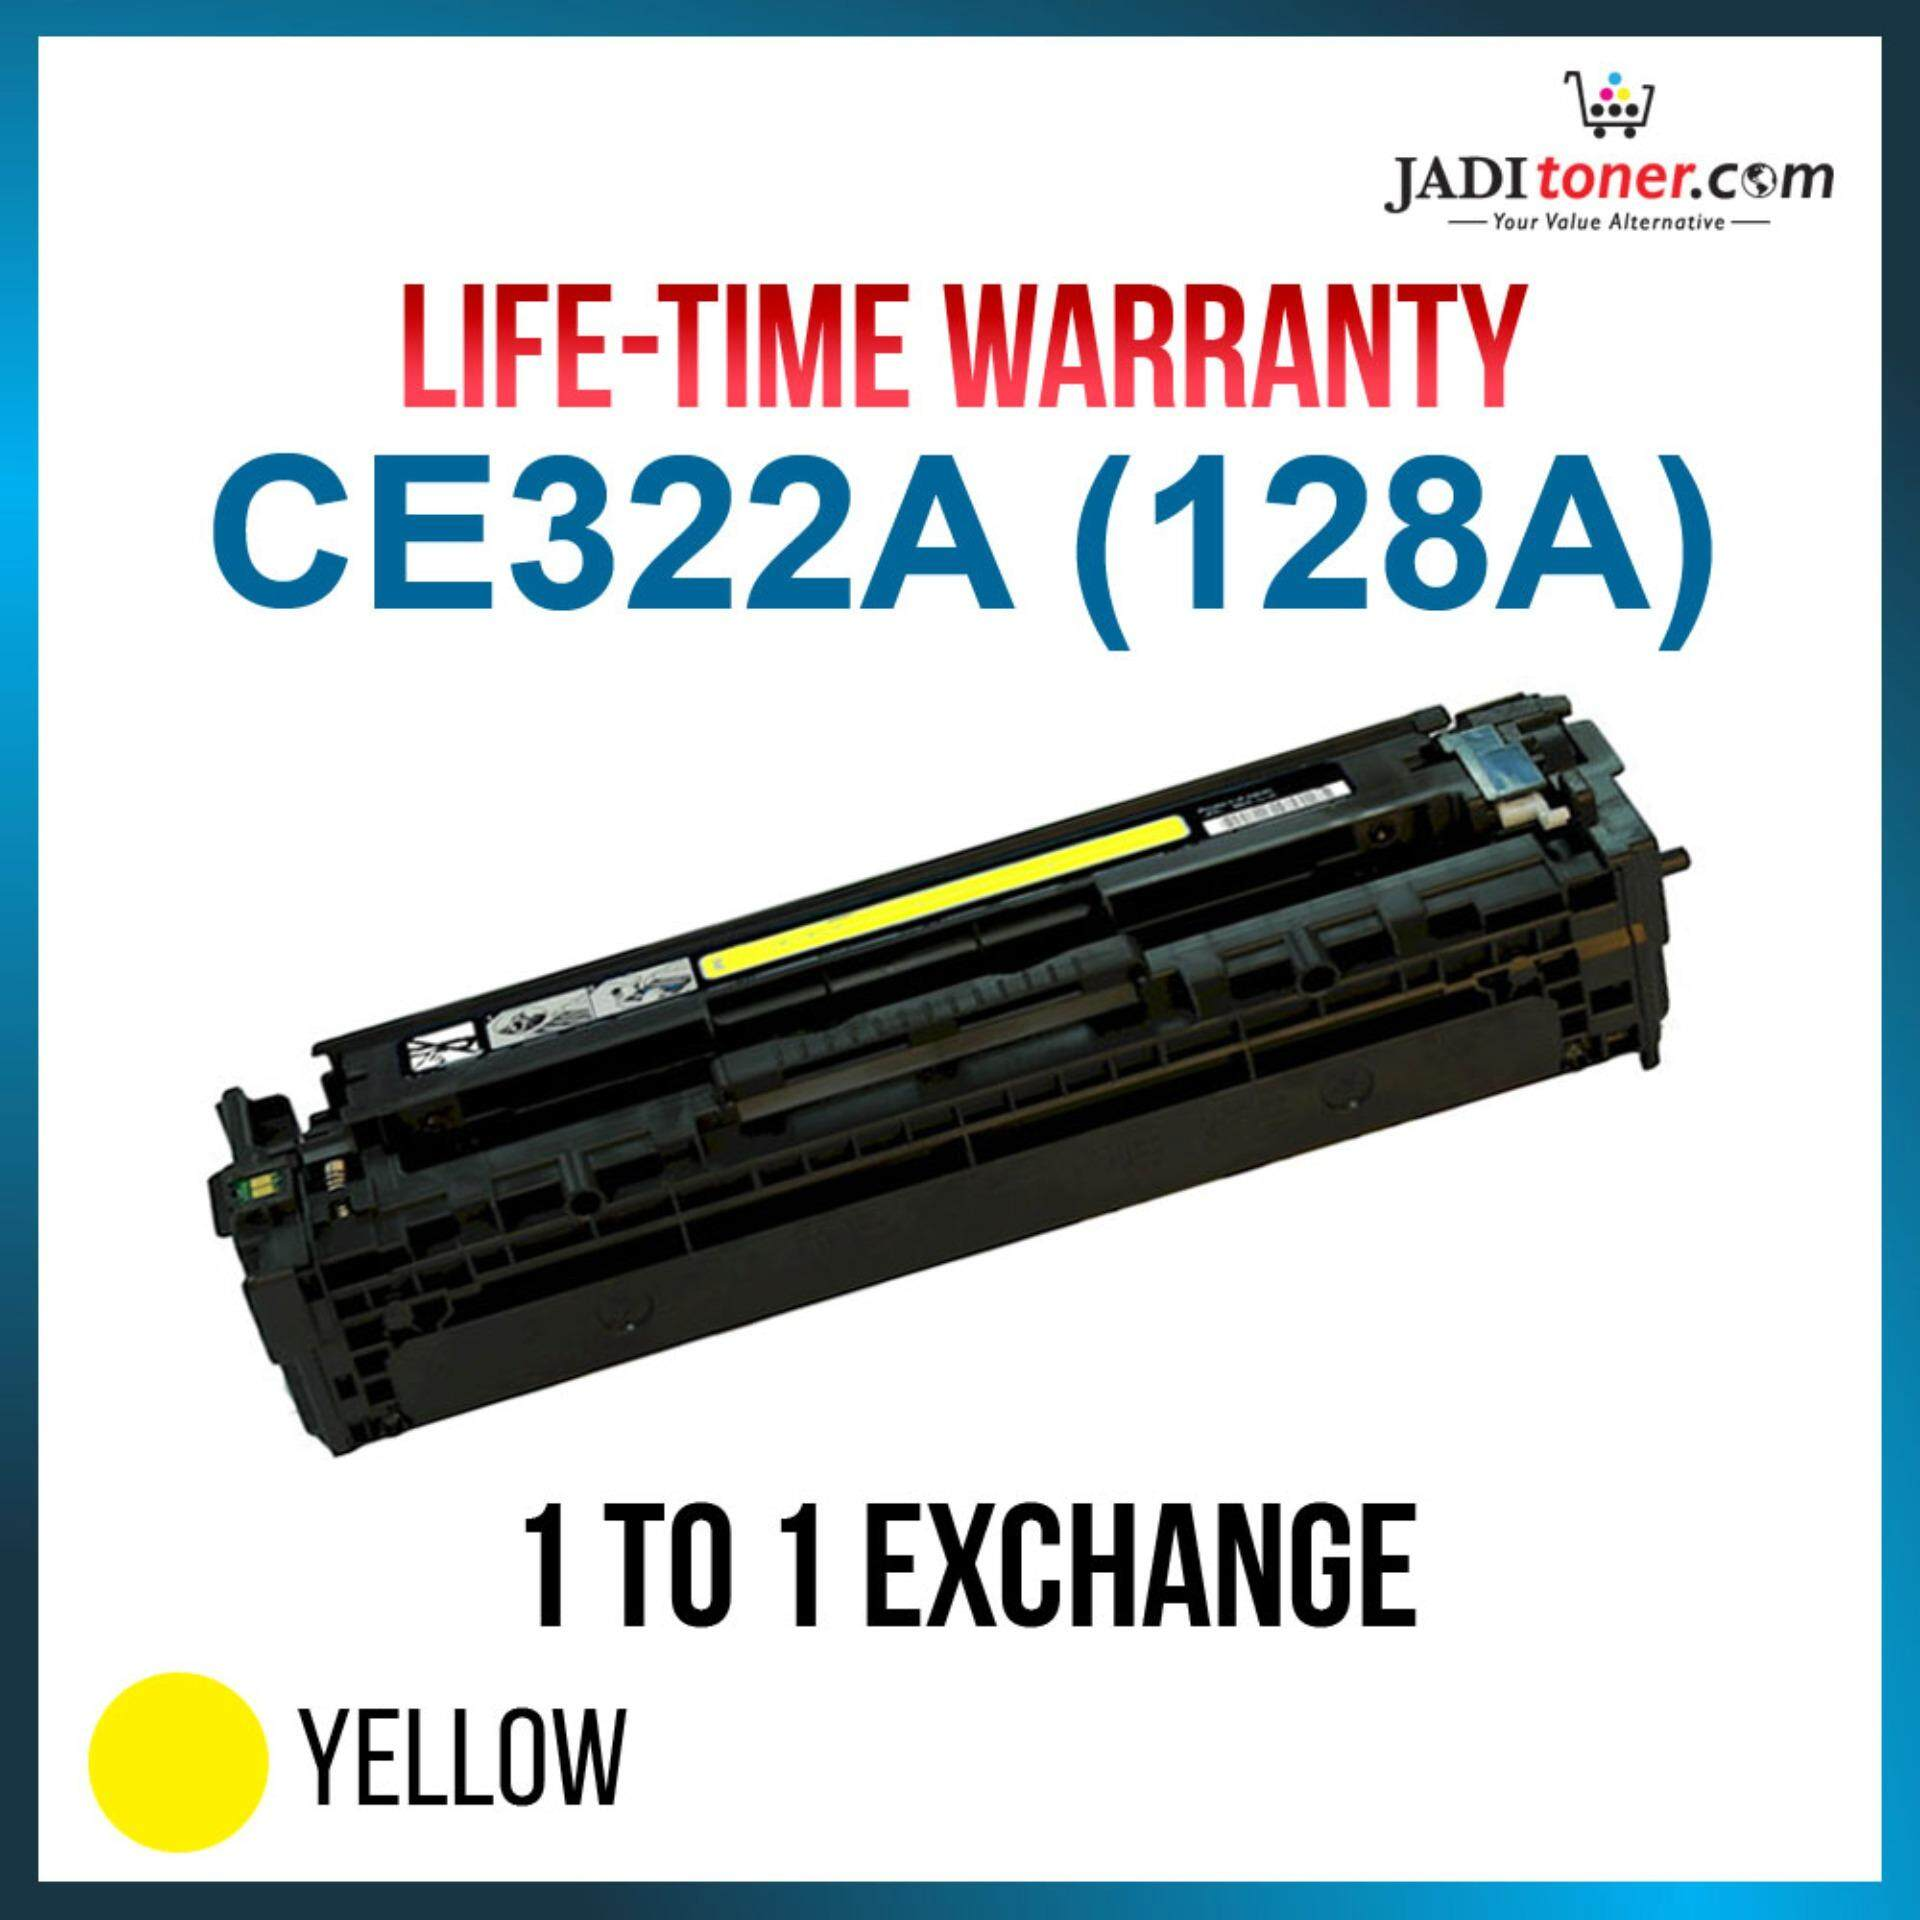 New Compatible CE322A 128A Yellow Laser Toner Cartridge For Use In HP CE322 322A HP LaserJet Pro CM1411 / CM1412 / CM1413 / CM1415 / CM1416 / CM1417 / CM1418 / HP LaserJet Pro CP1521 / CP1522 / CP1523 / CP1525 / CP1526 / CP1527 / CP1528